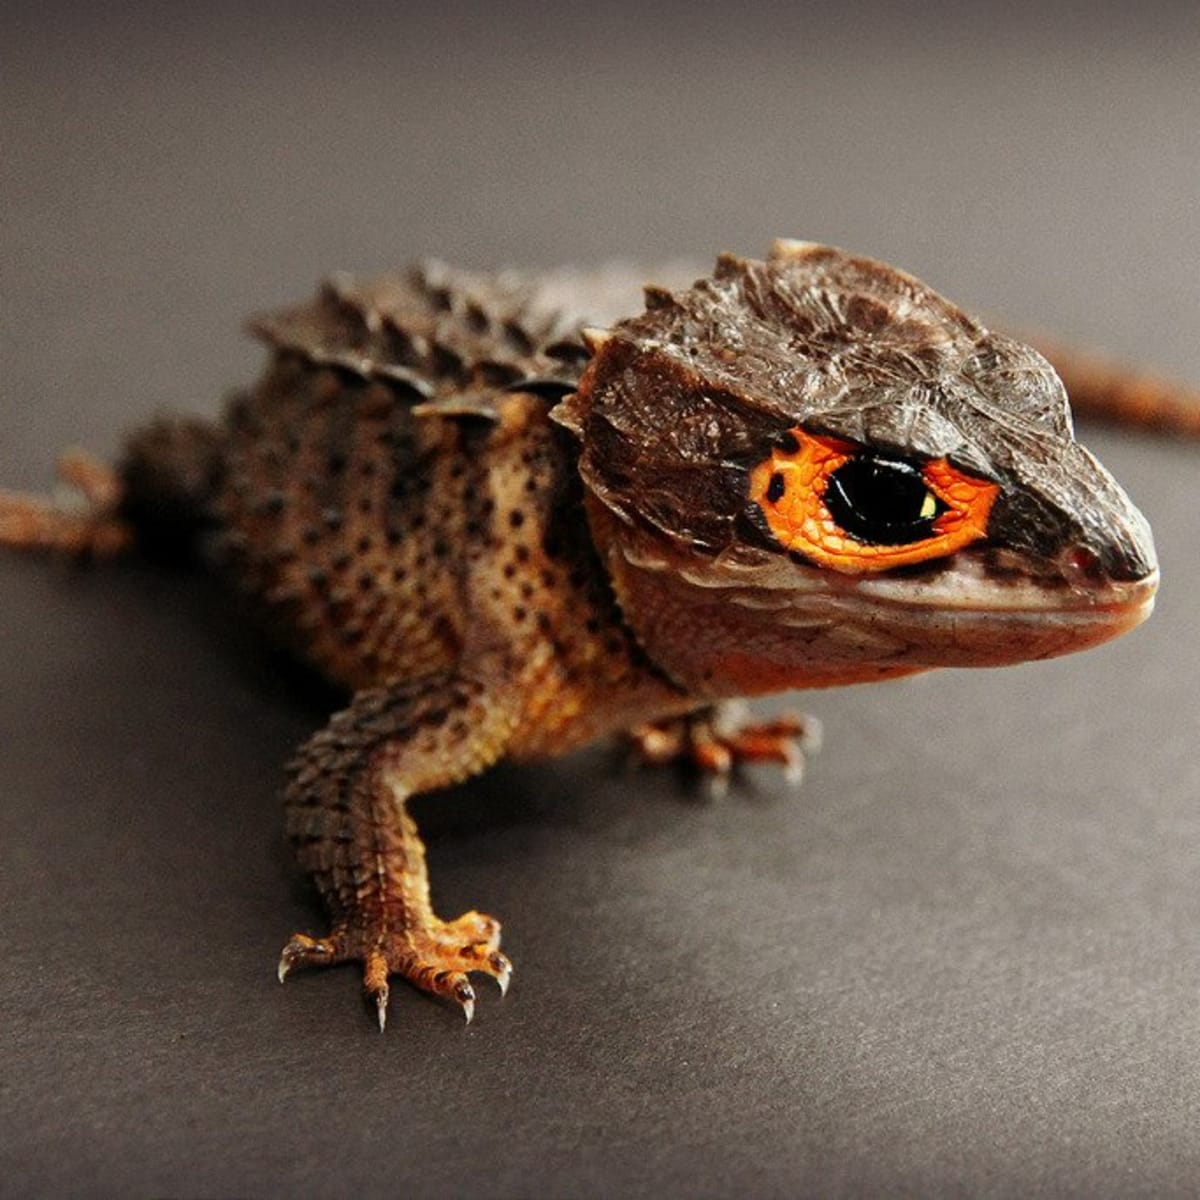 17 Pets You Can Legally Own That Look Like Dragons Pethelpful By Fellow Animal Lovers And Experts